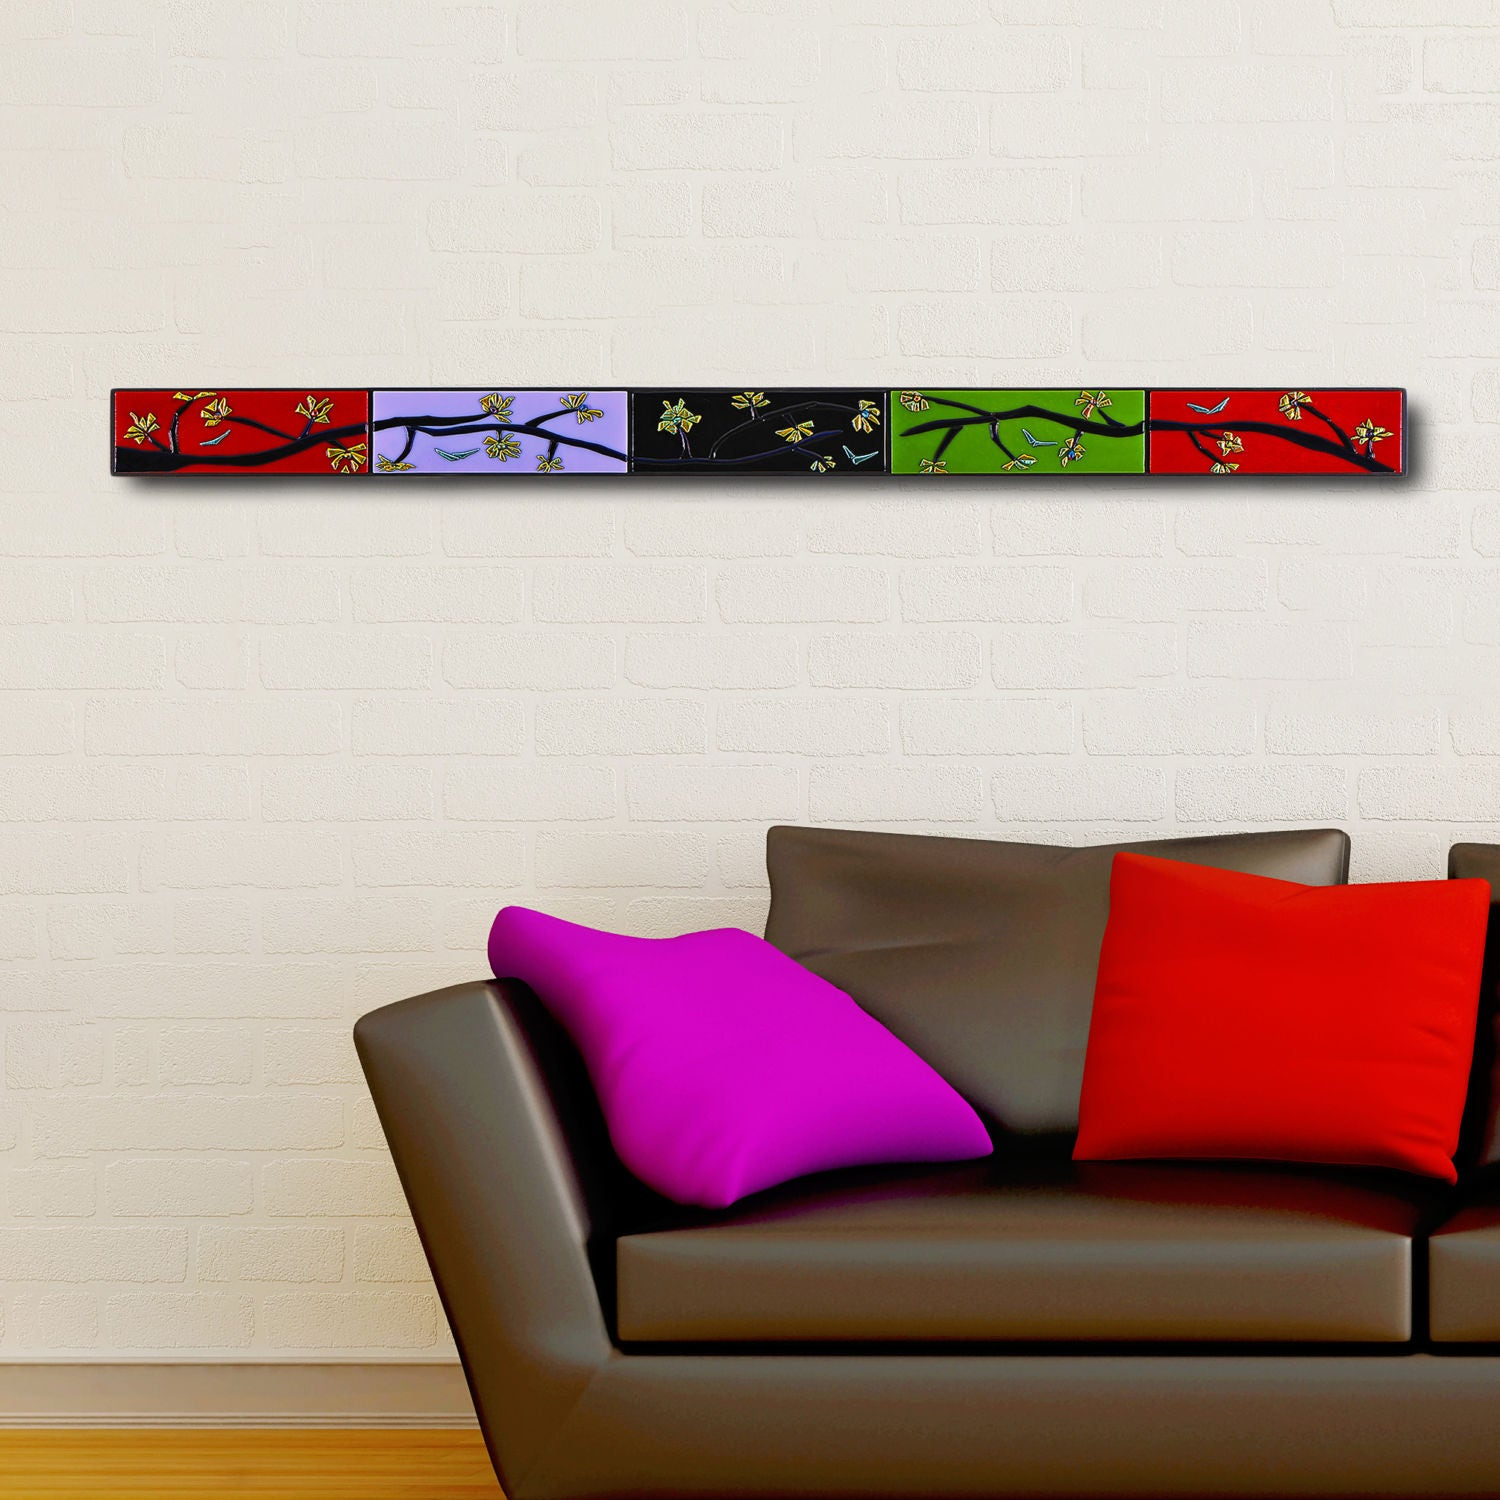 Horizontal Wall Decor tall narrow abstract wall art. 4 ft modern zen home decor.